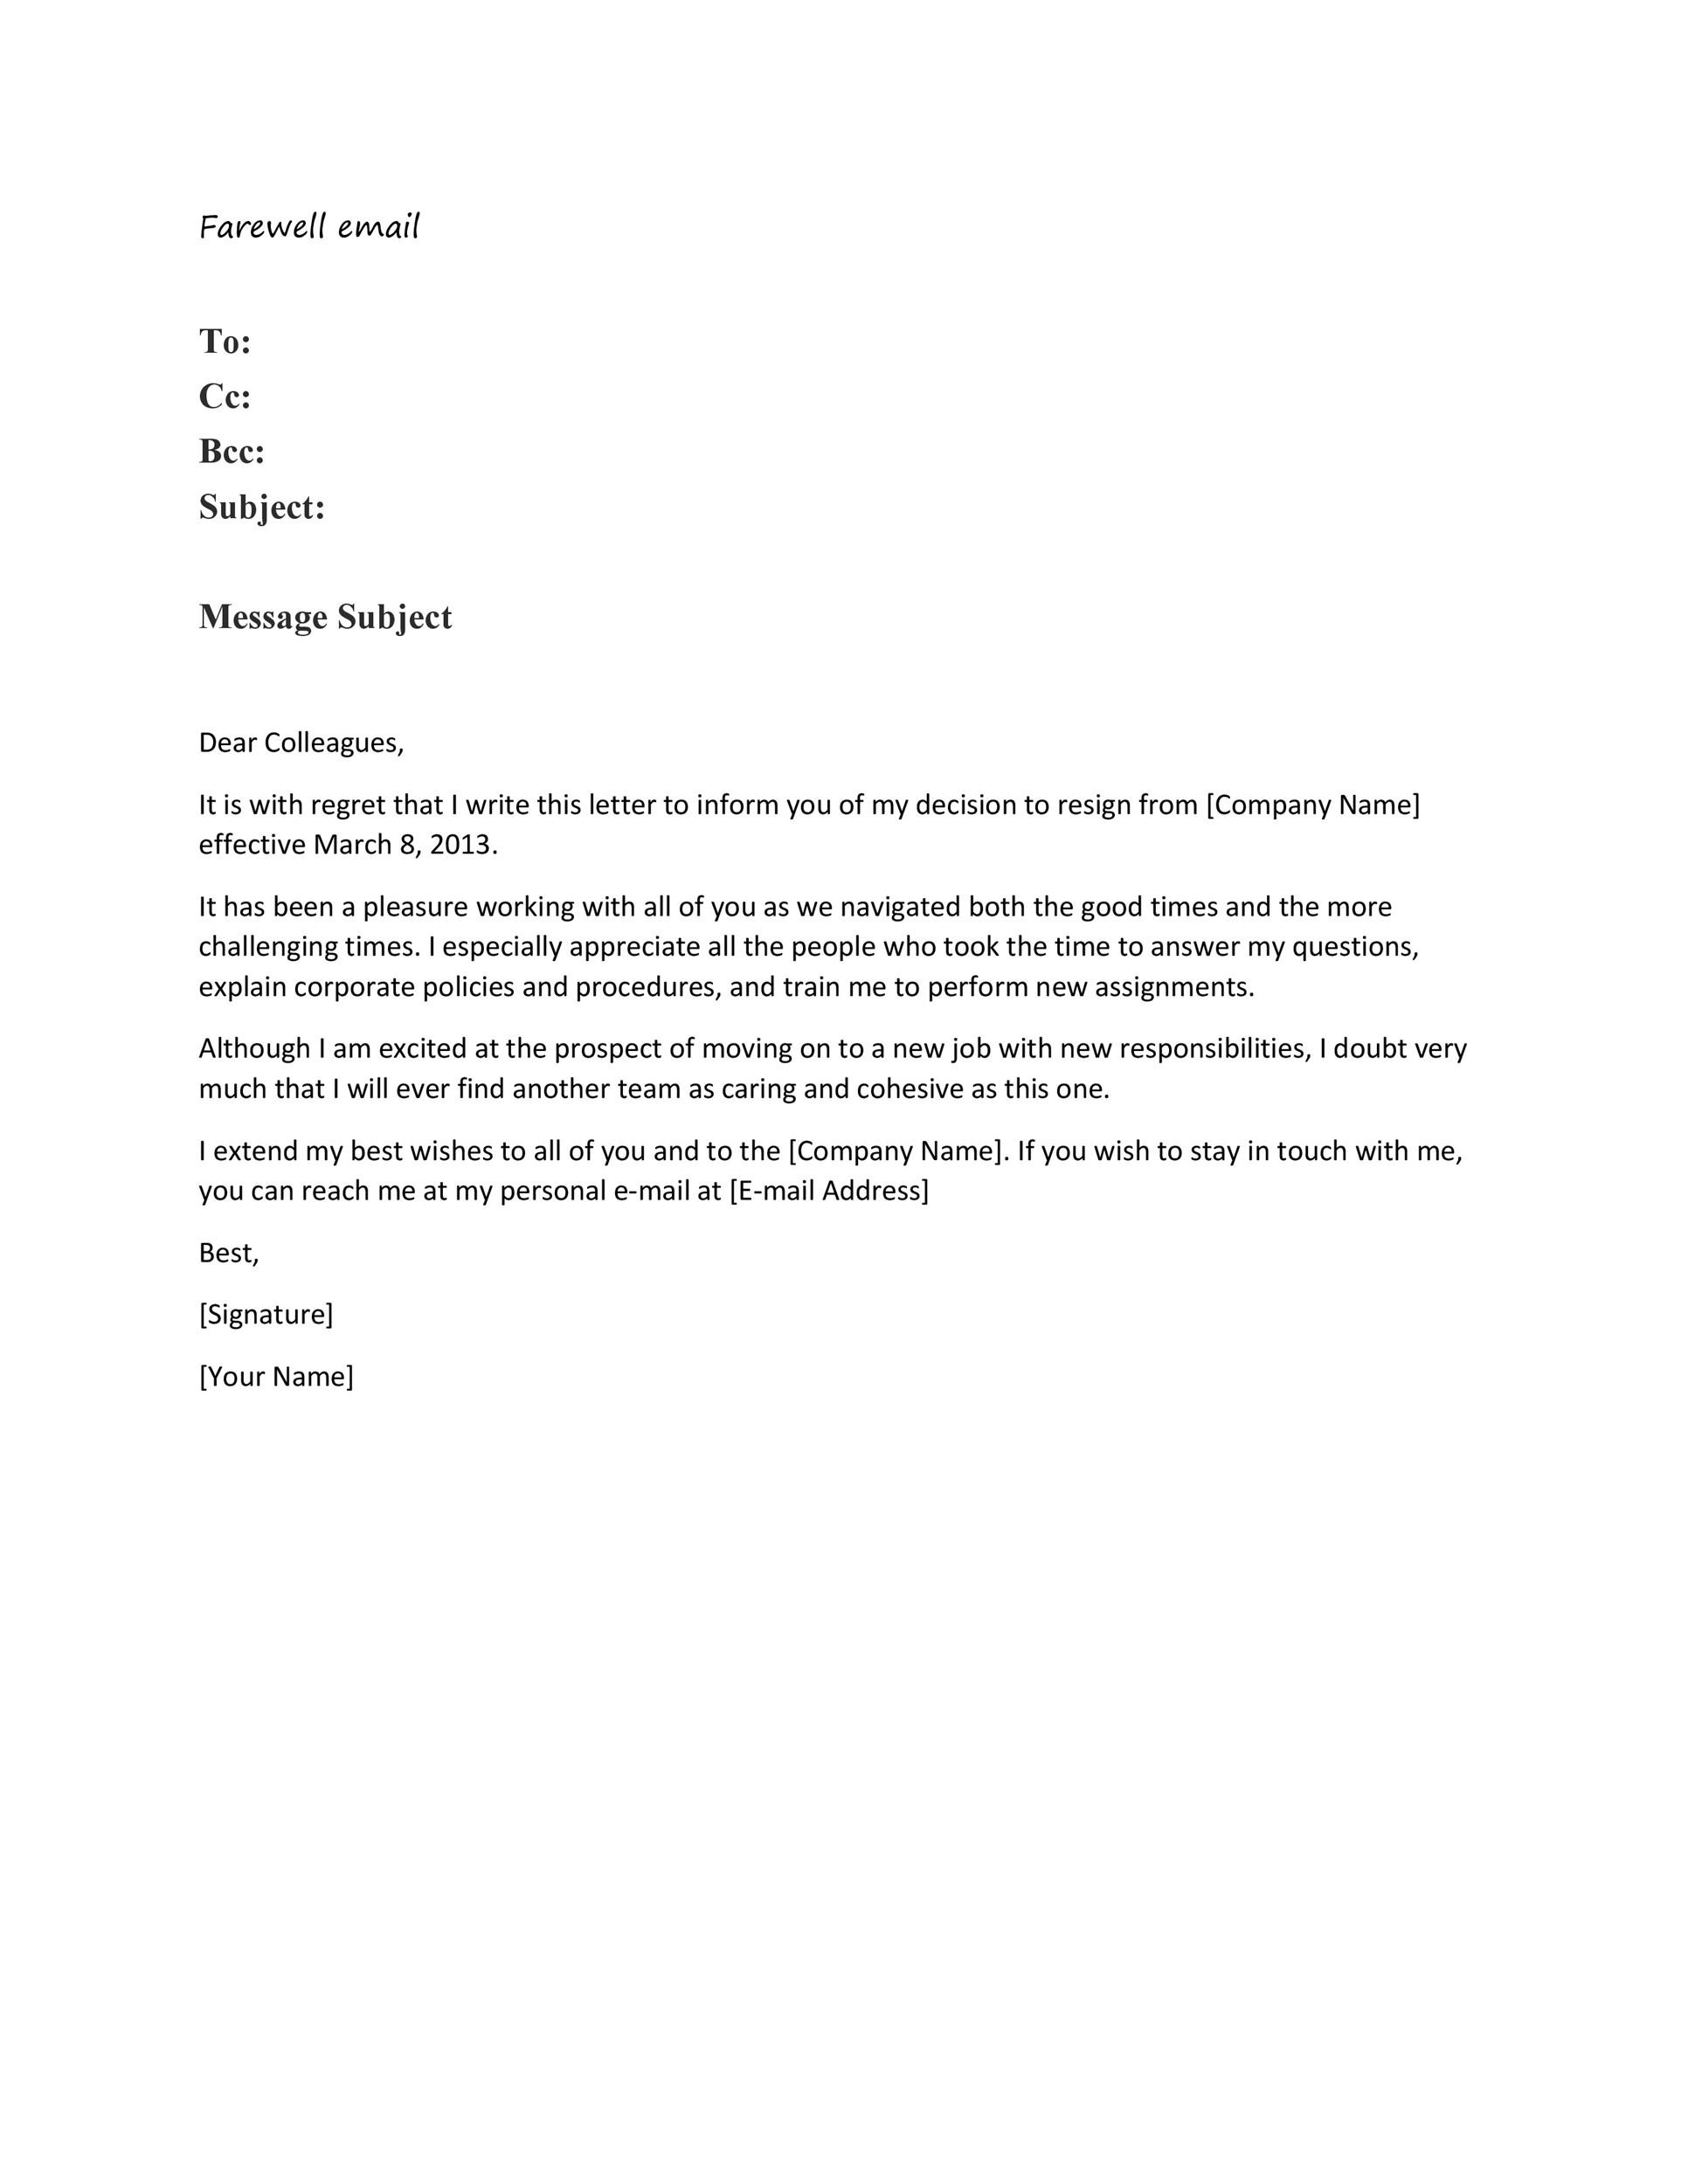 Response To Resignation Letter Of Colleague from templatelab.com